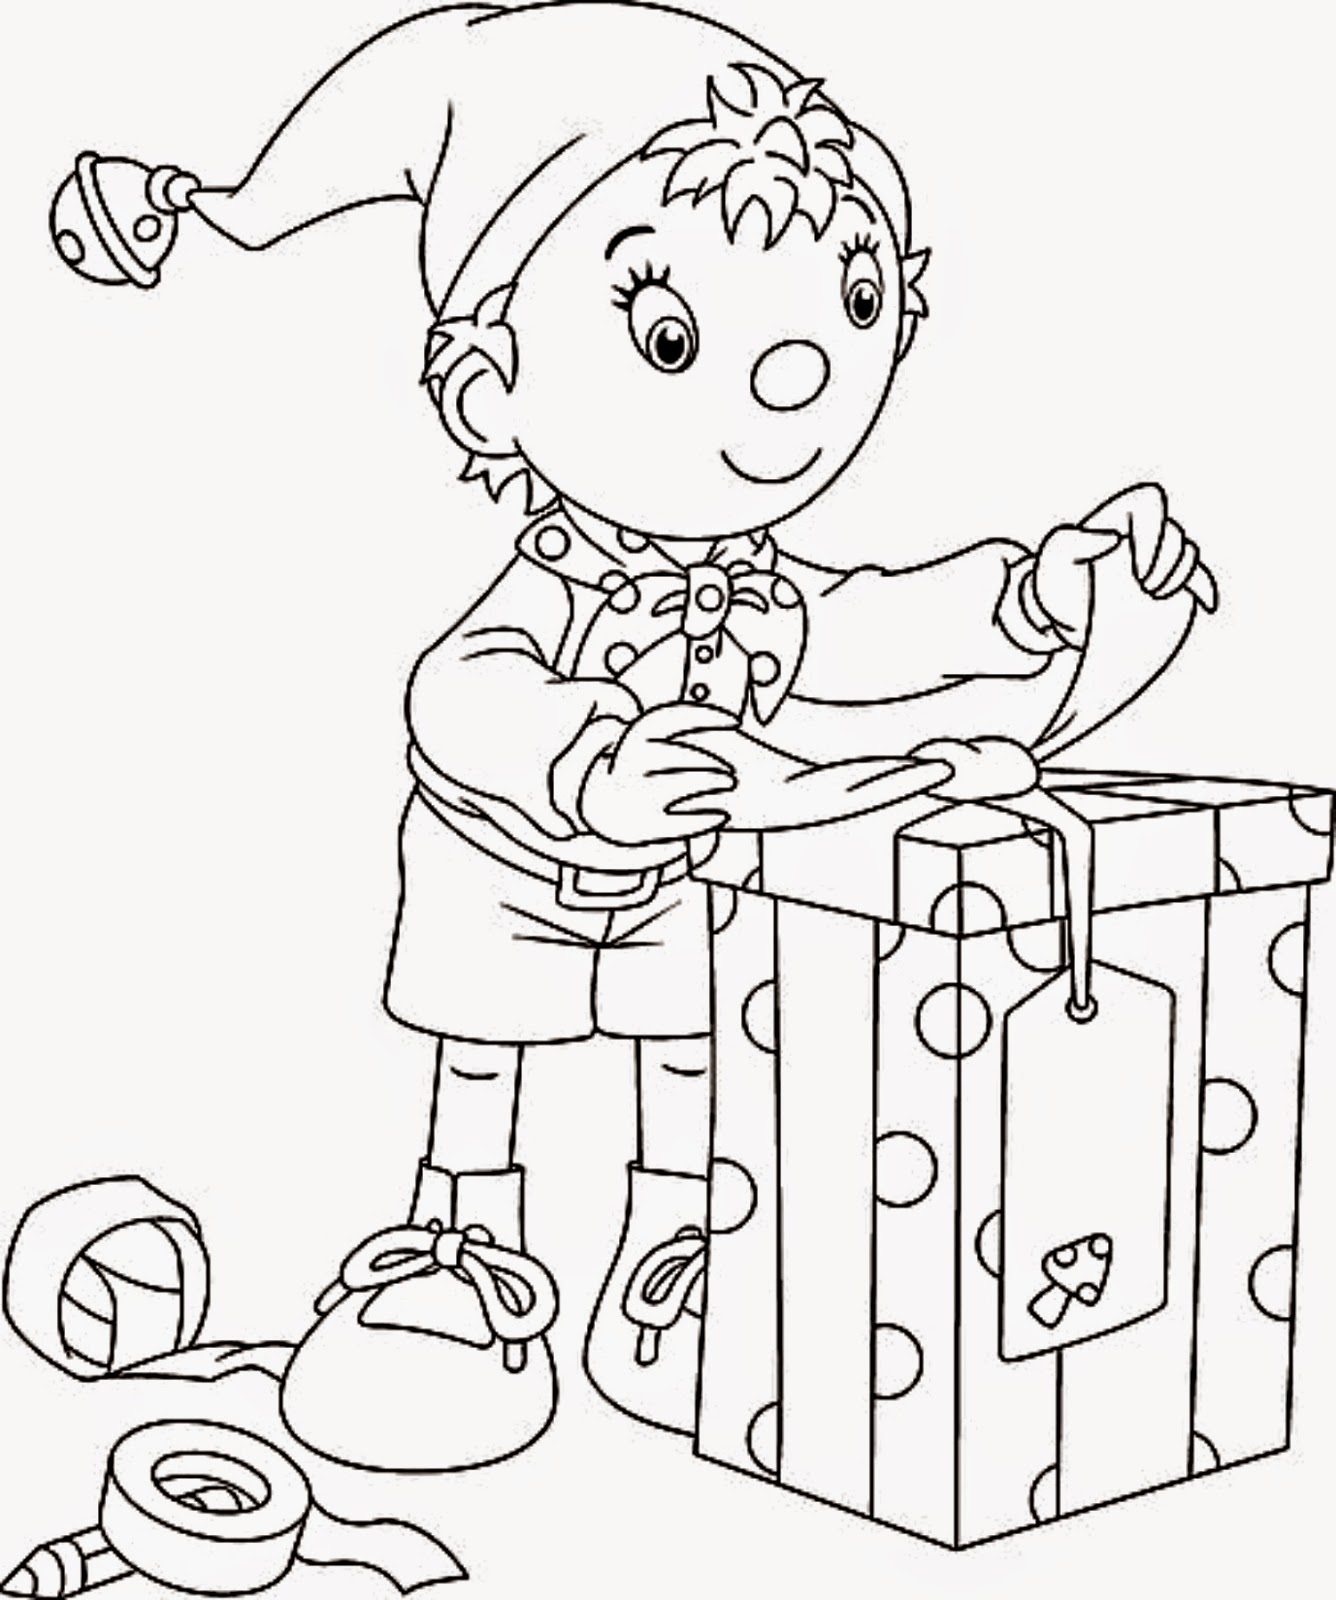 Coloring Pages Christmas Elf Coloring Page the holiday site christmas elf coloring pages filminspector com